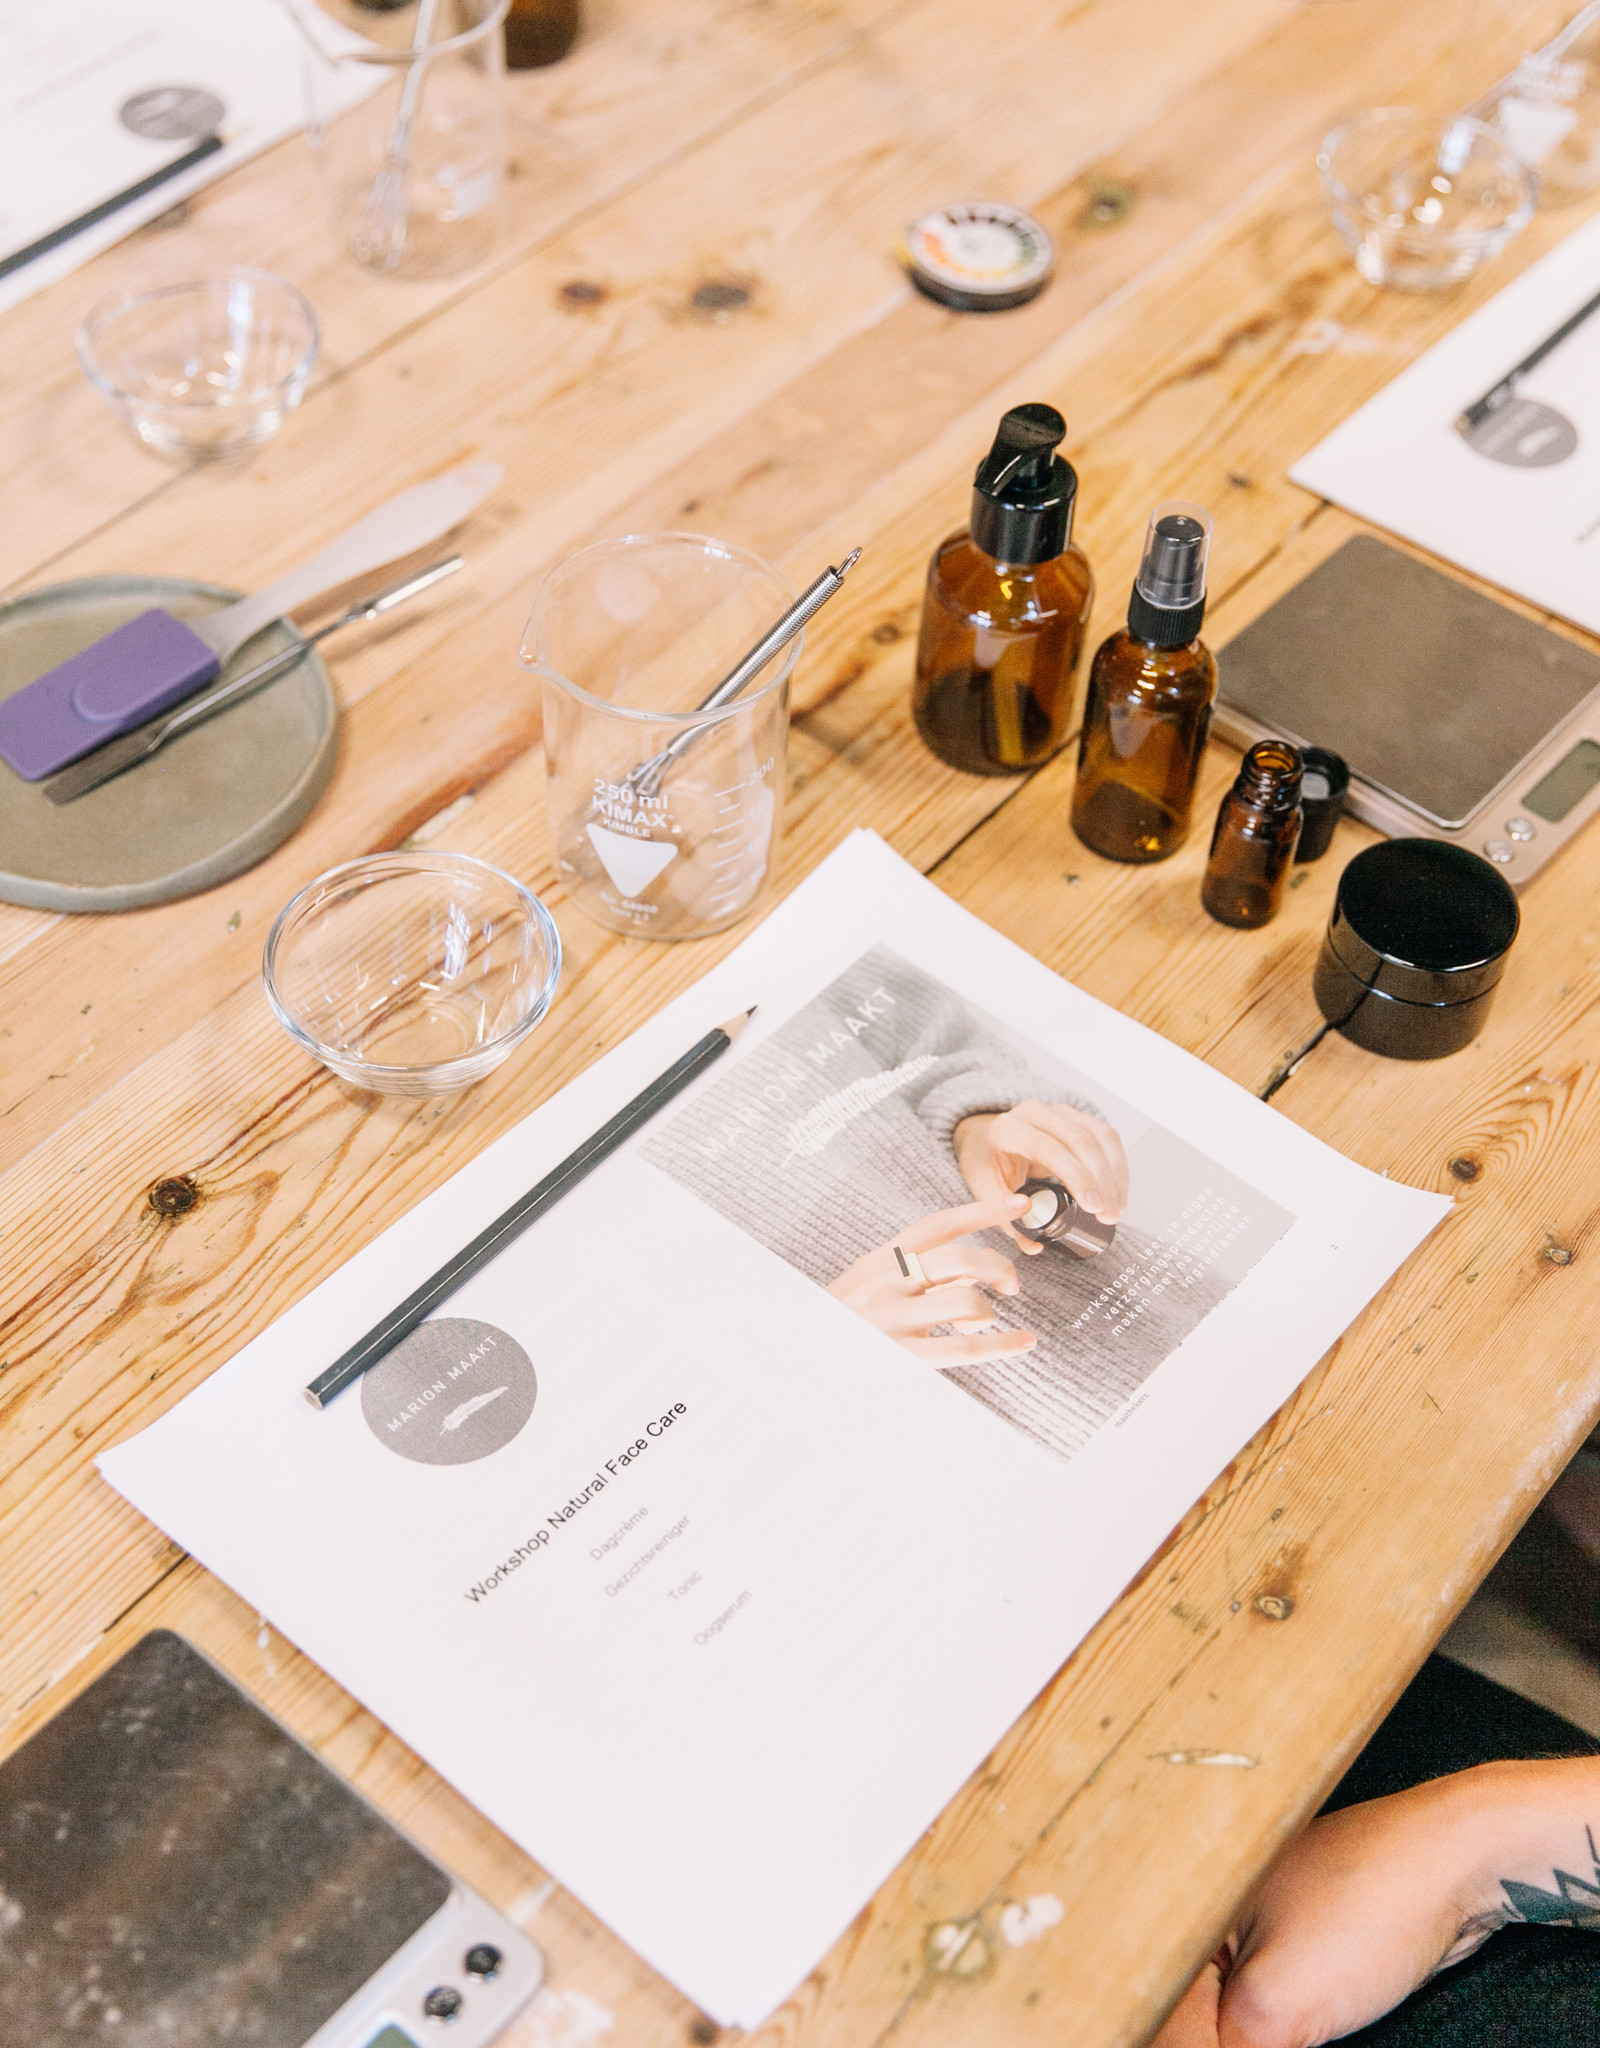 Marion Maakt 5/12 voormiddag: Natural face care